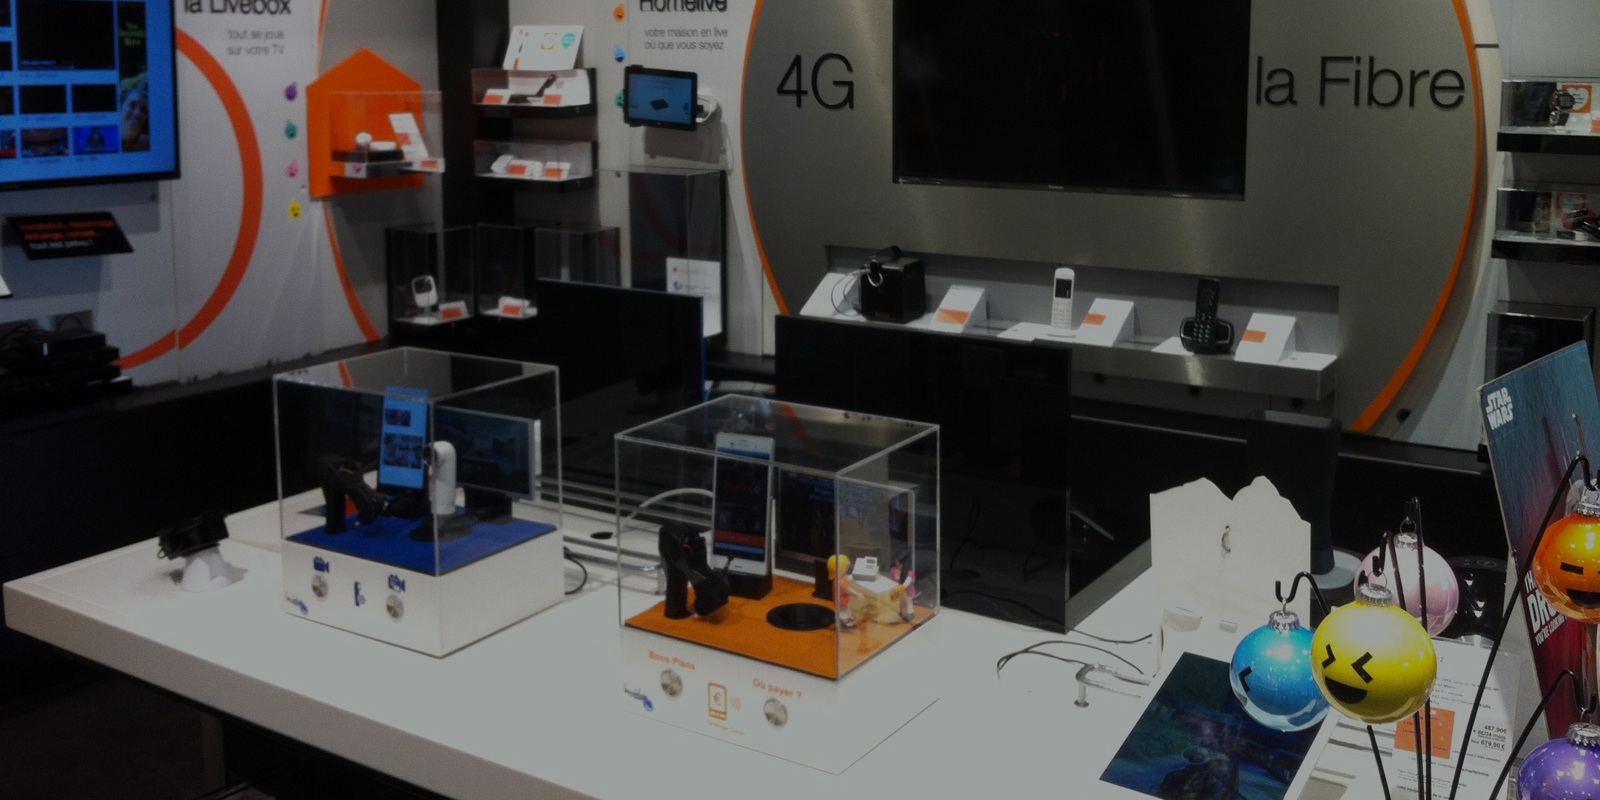 Accelerate connected devices sales